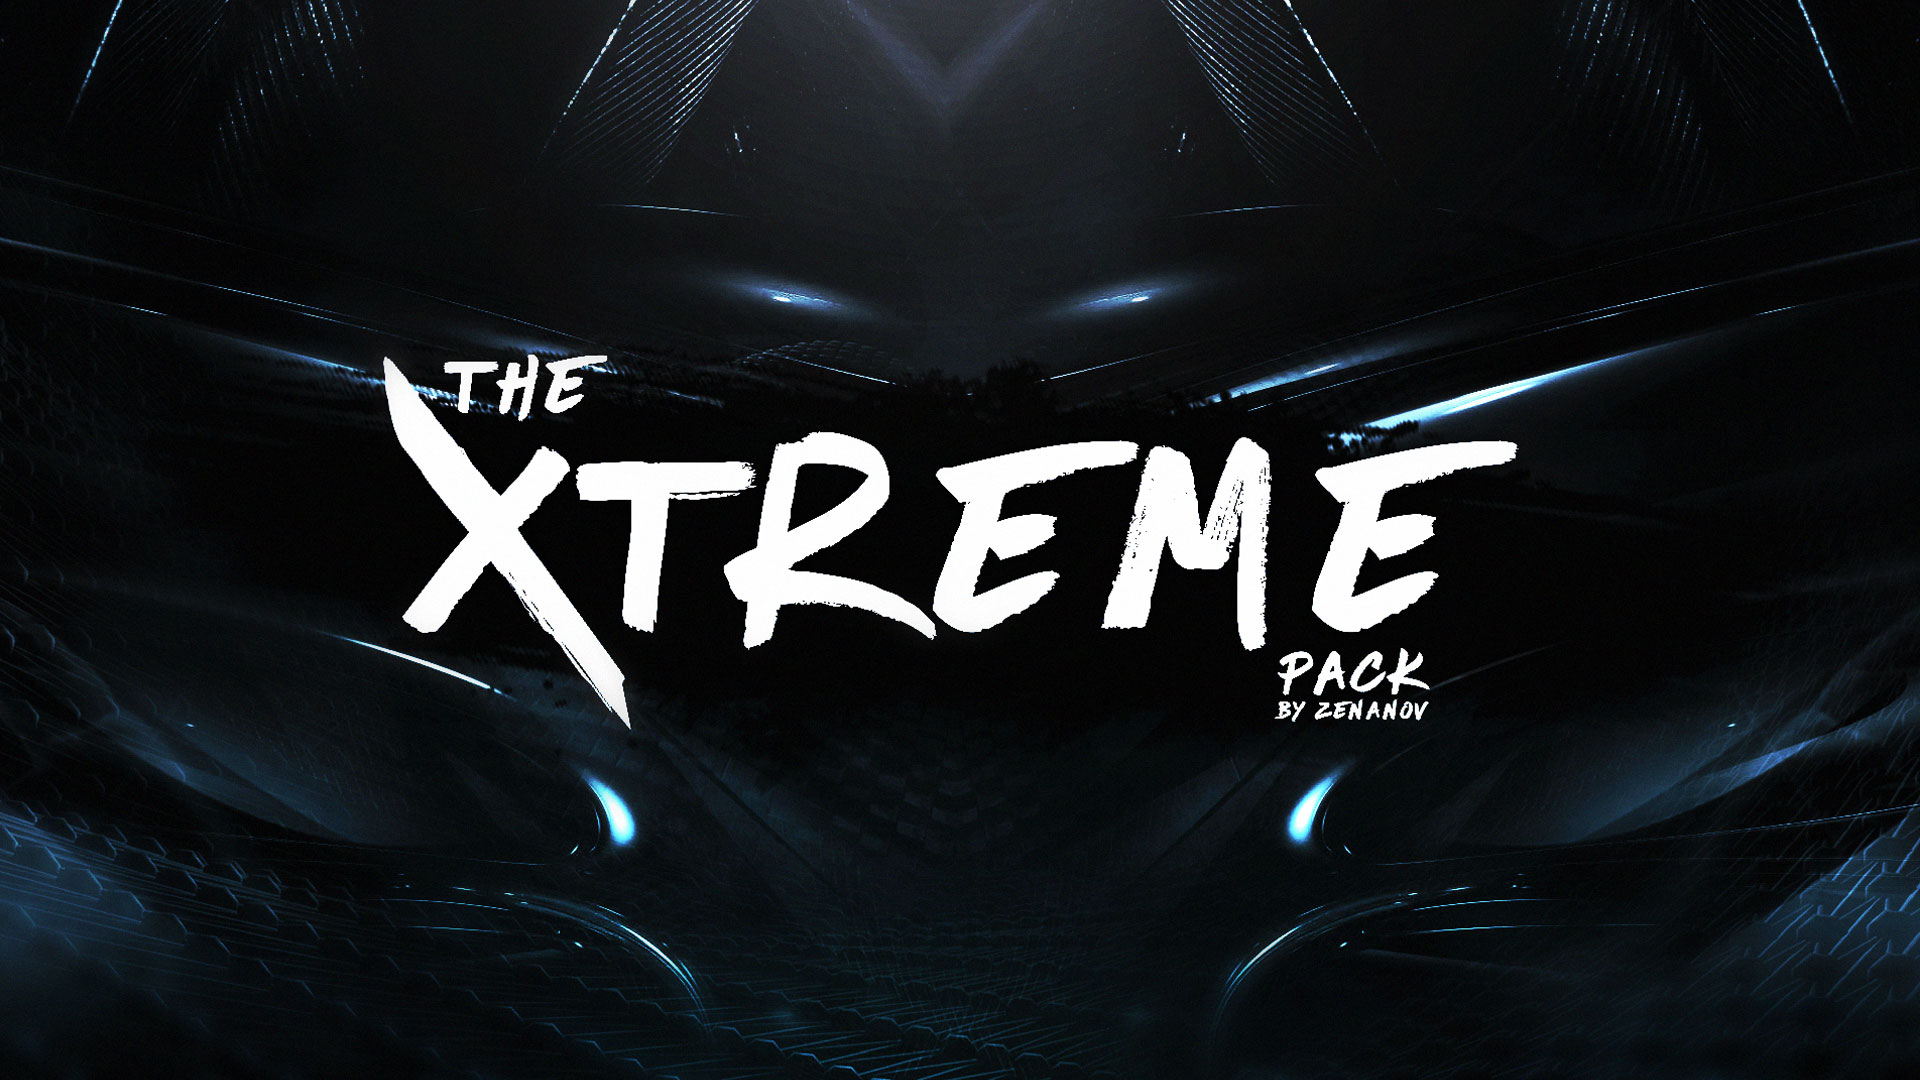 The-XTREME-Pack-2017.jpg